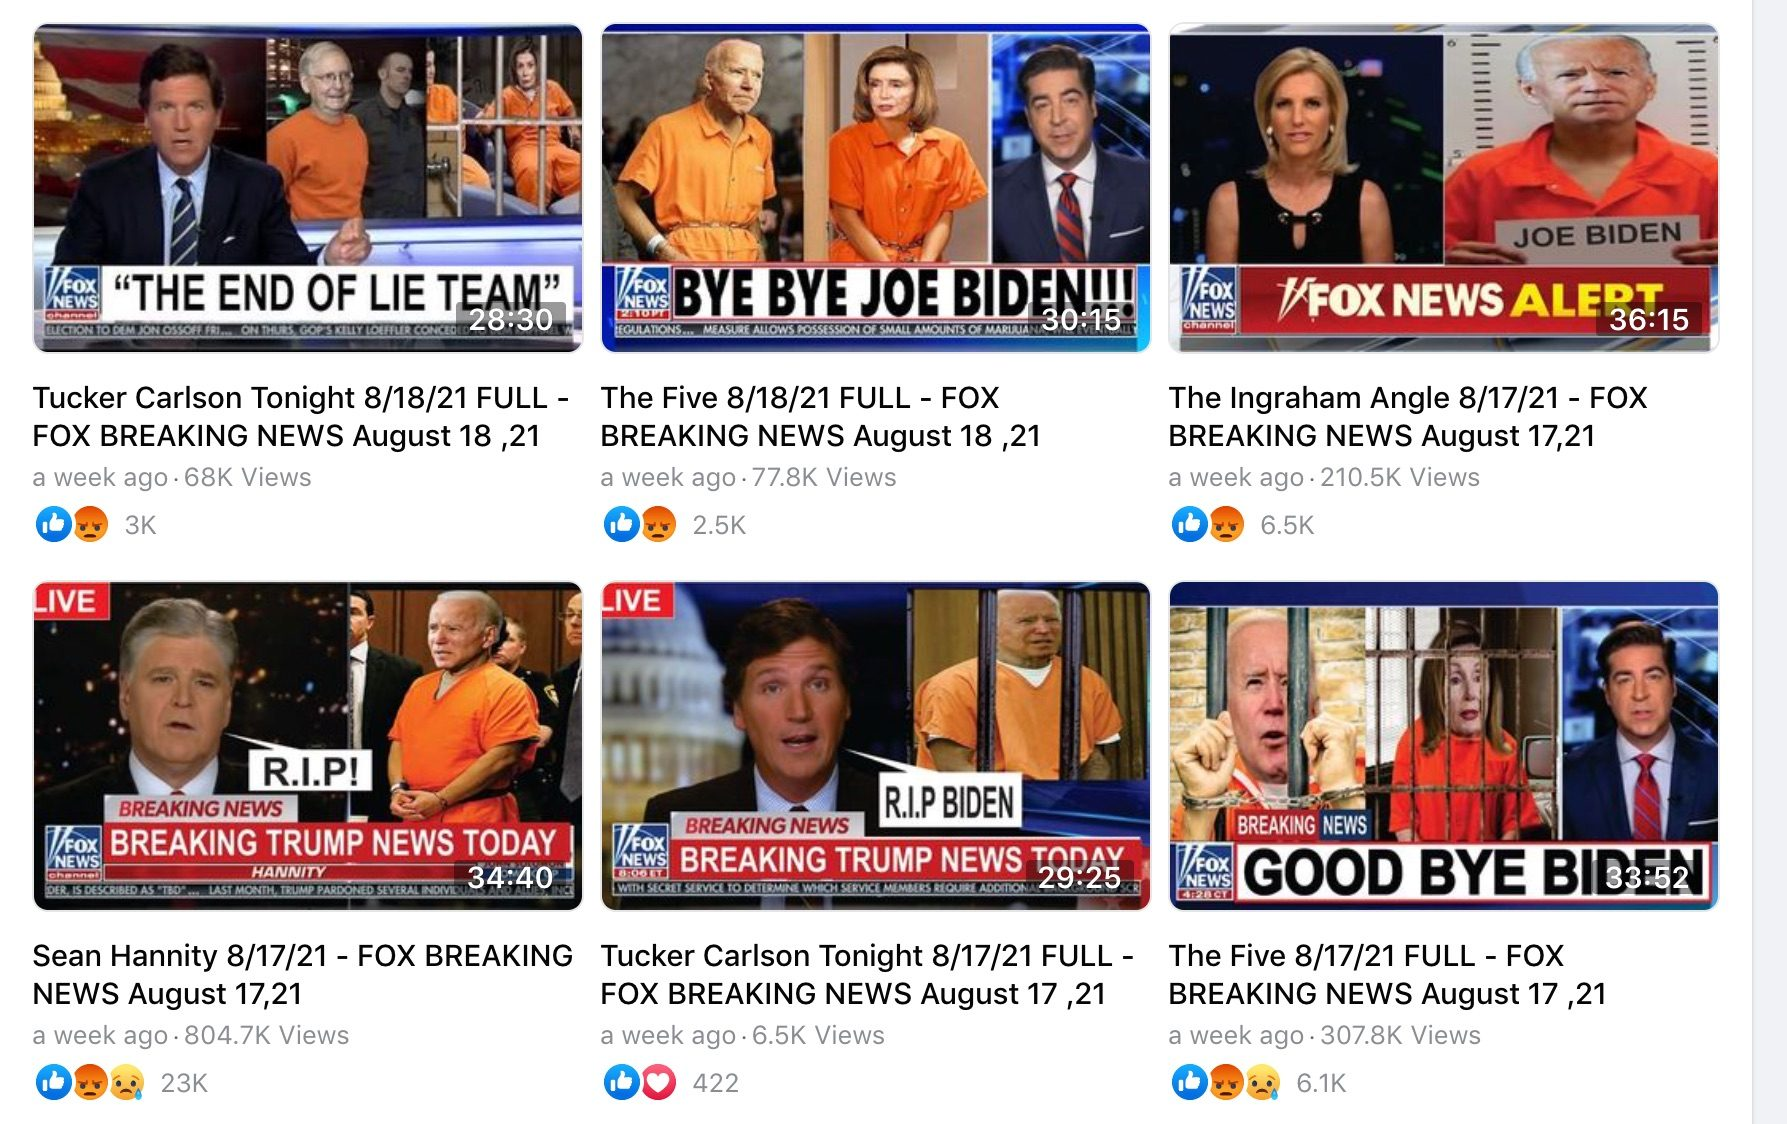 A Facebook page with a Russian name and Bella Calamidades pushed pro-Trump videos from Fox News OAN and Newsmax with altered thumbnails to mislead viewers with the idea that President Joe Biden and House Speaker Nancy Pelosi were going to jail.